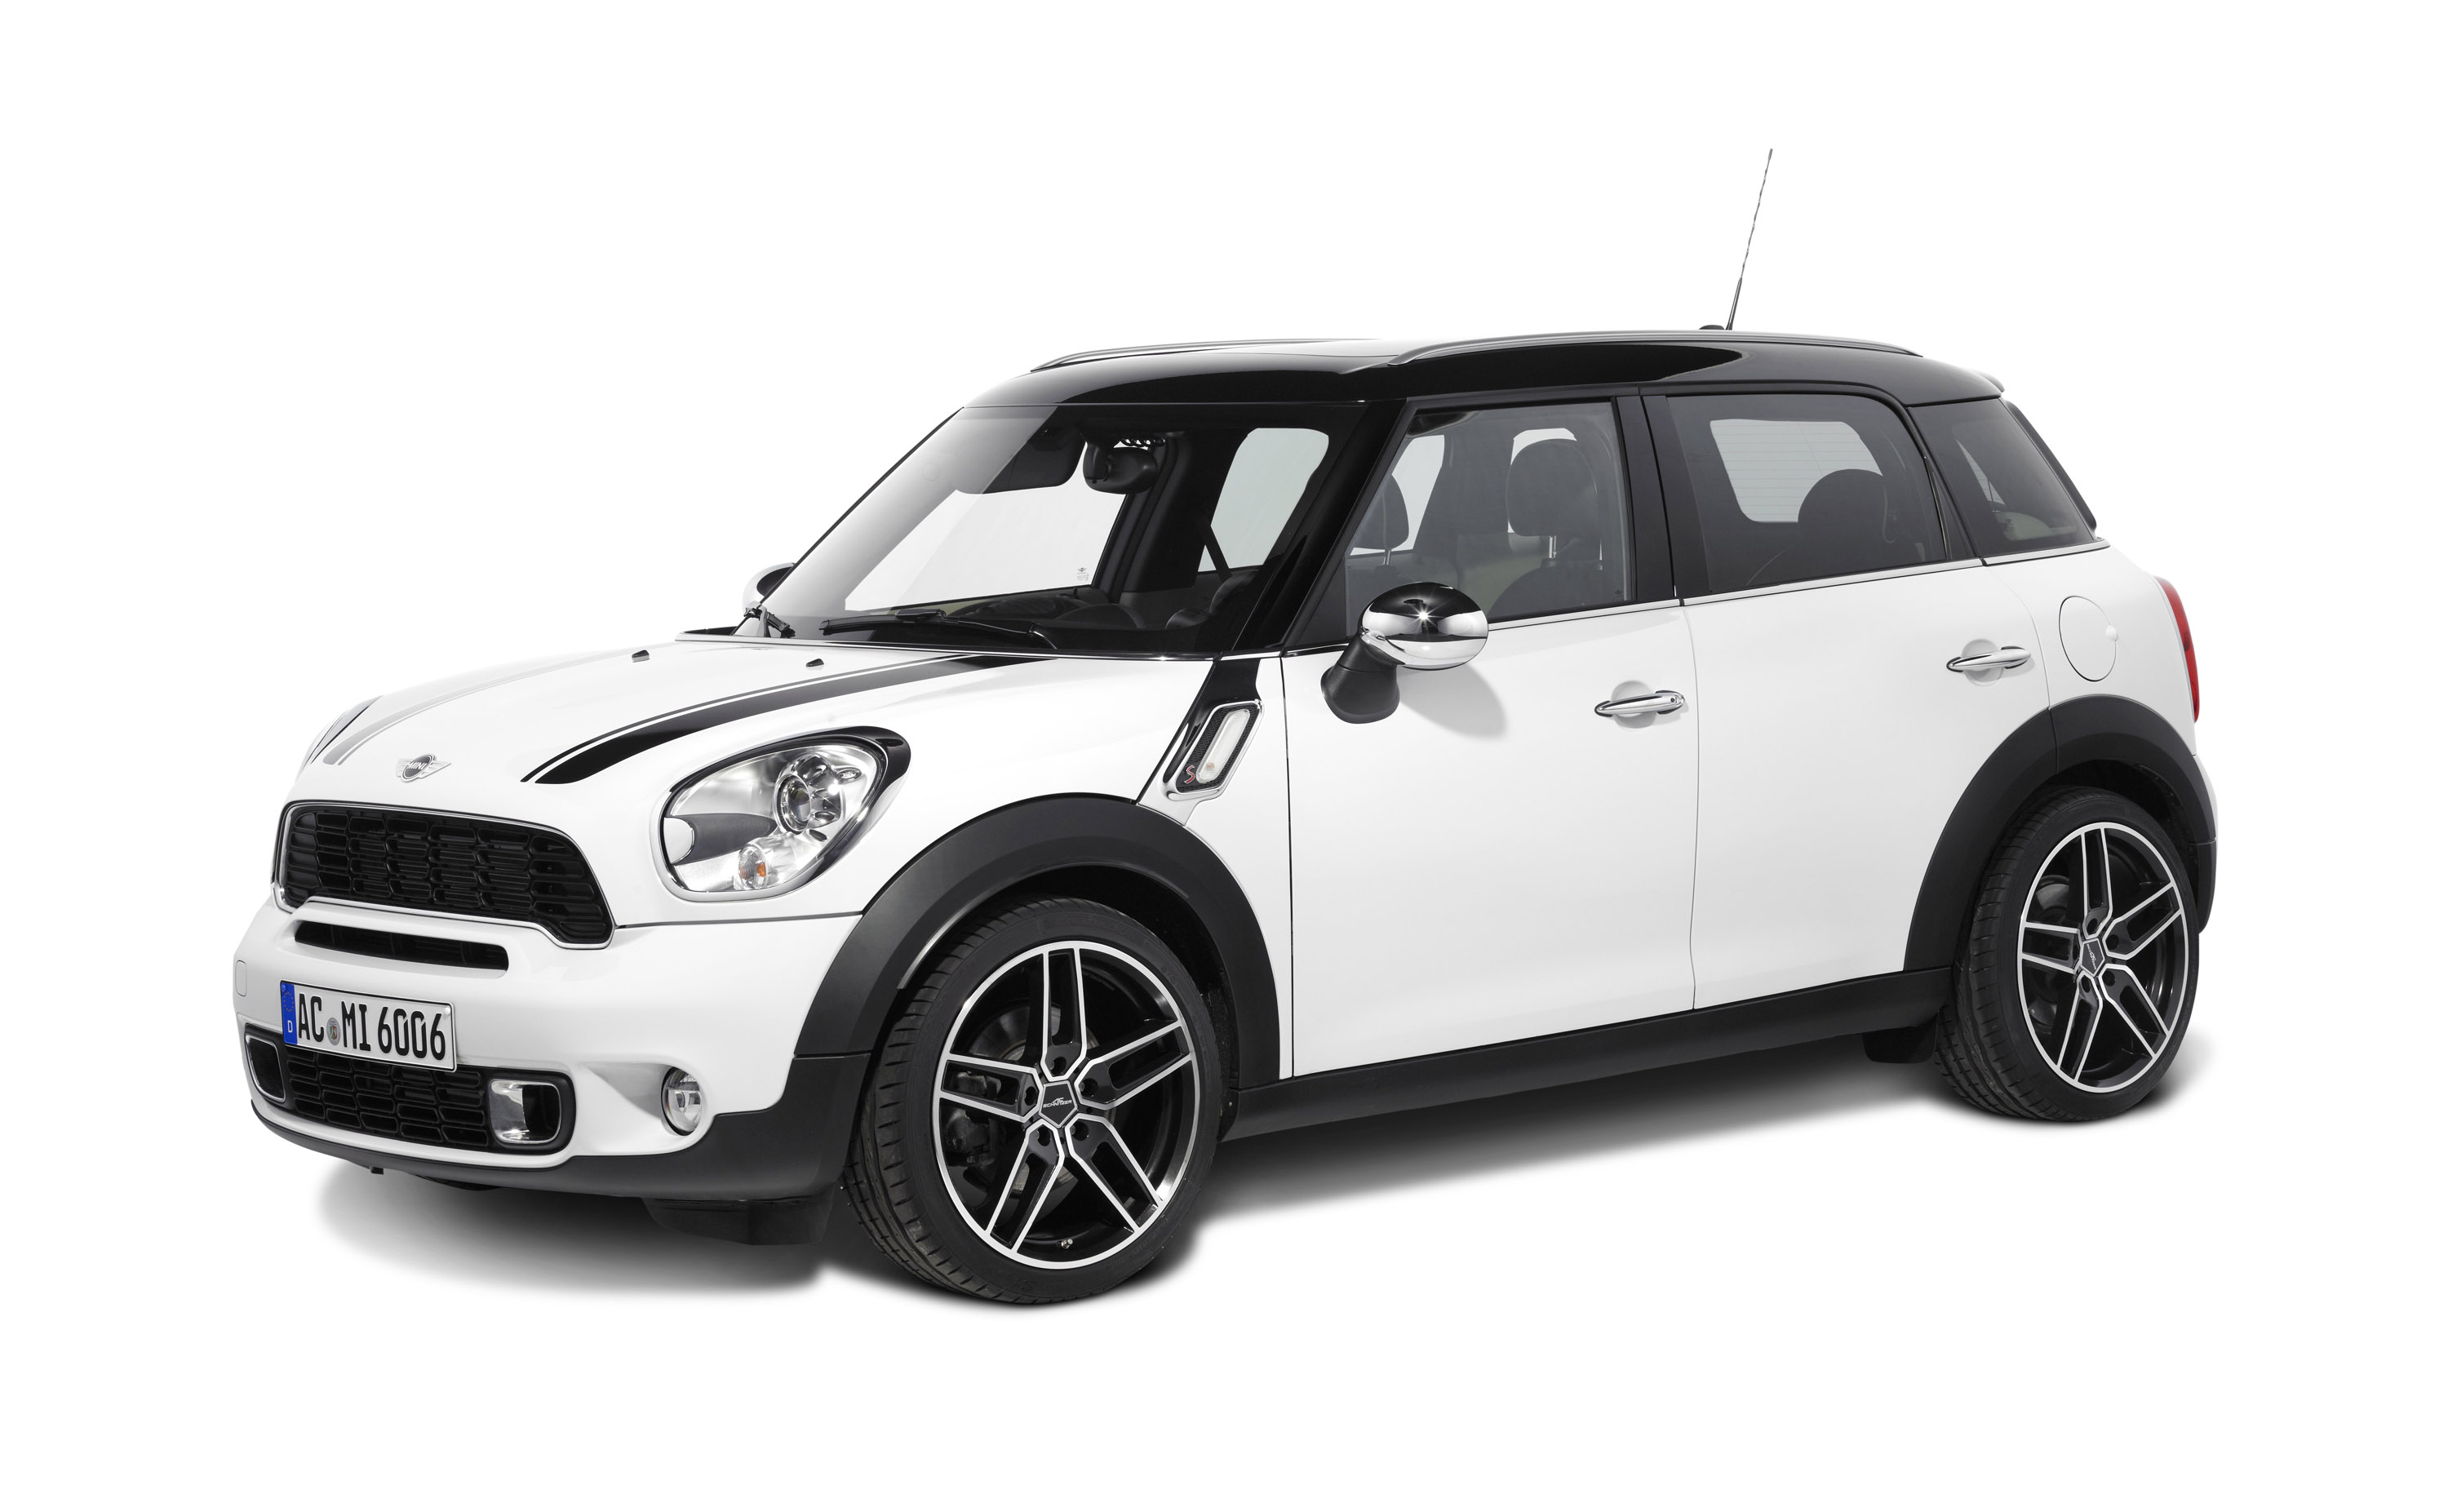 Ac schnitzer mini cooper s countryman front side picture 1 of 6 ac schnitzer mini cooper s countryman front side picture 1 of 6 cars pinterest cars vanachro Choice Image